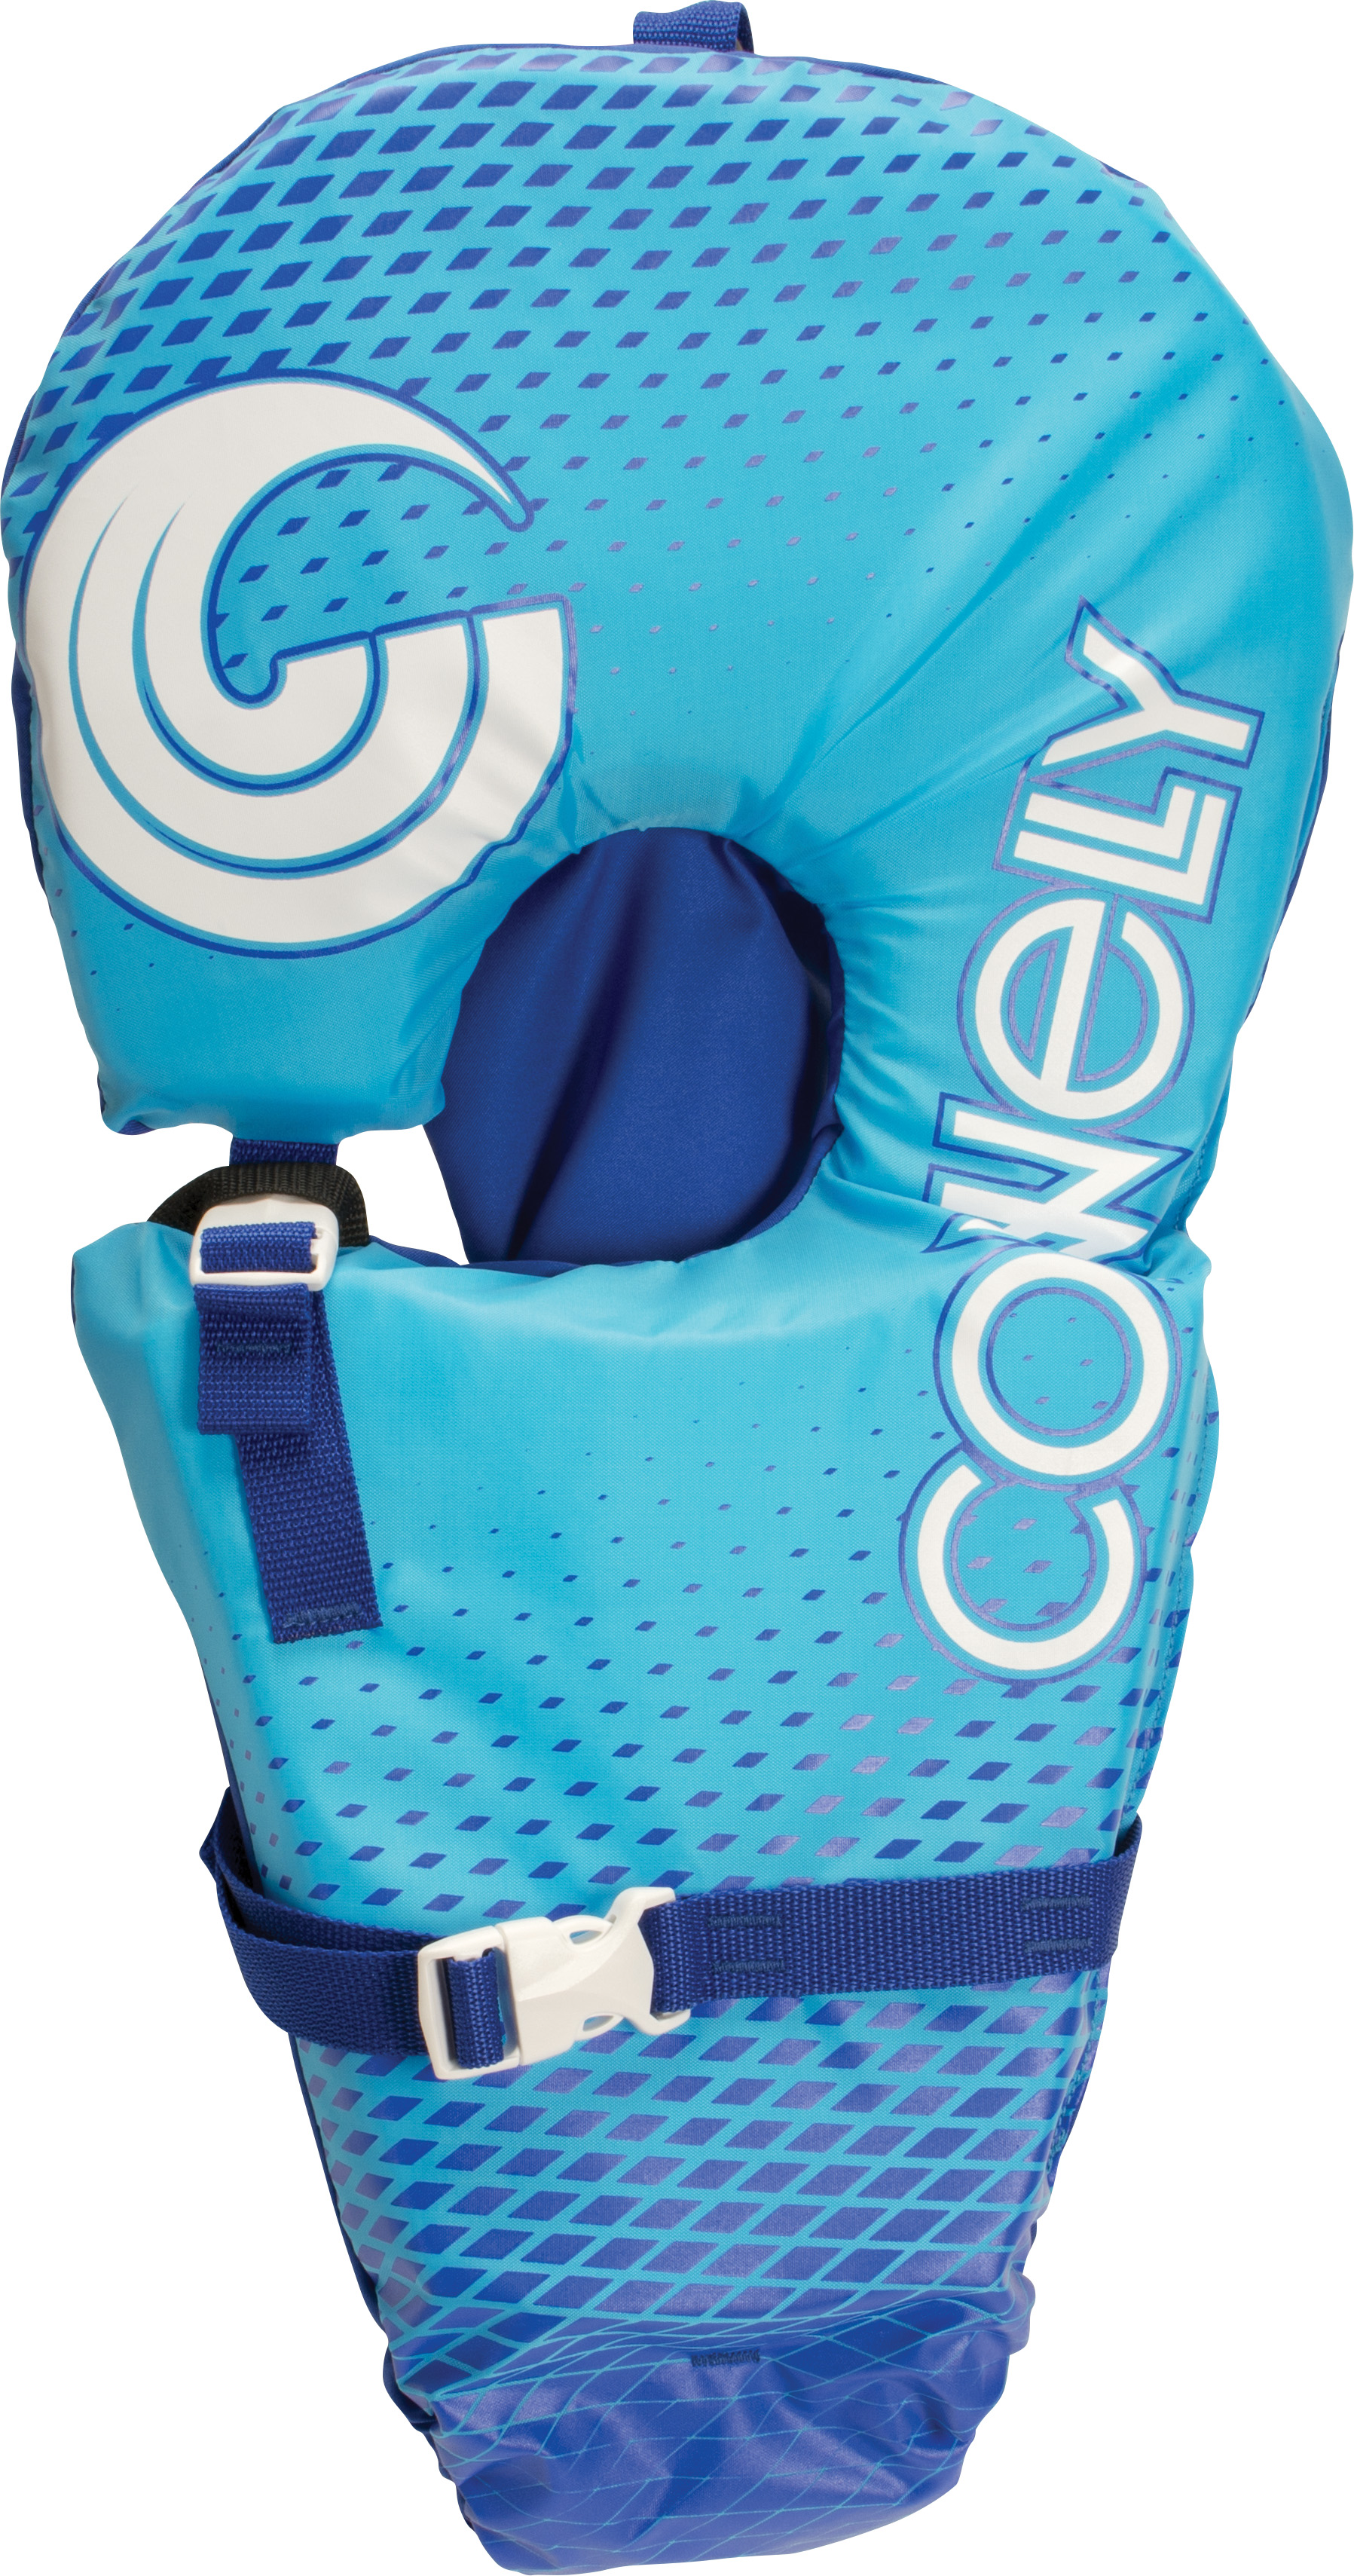 BOY'S NYLON LIFE VEST - BABYSAFE 0-14KG CONNELLY 2019